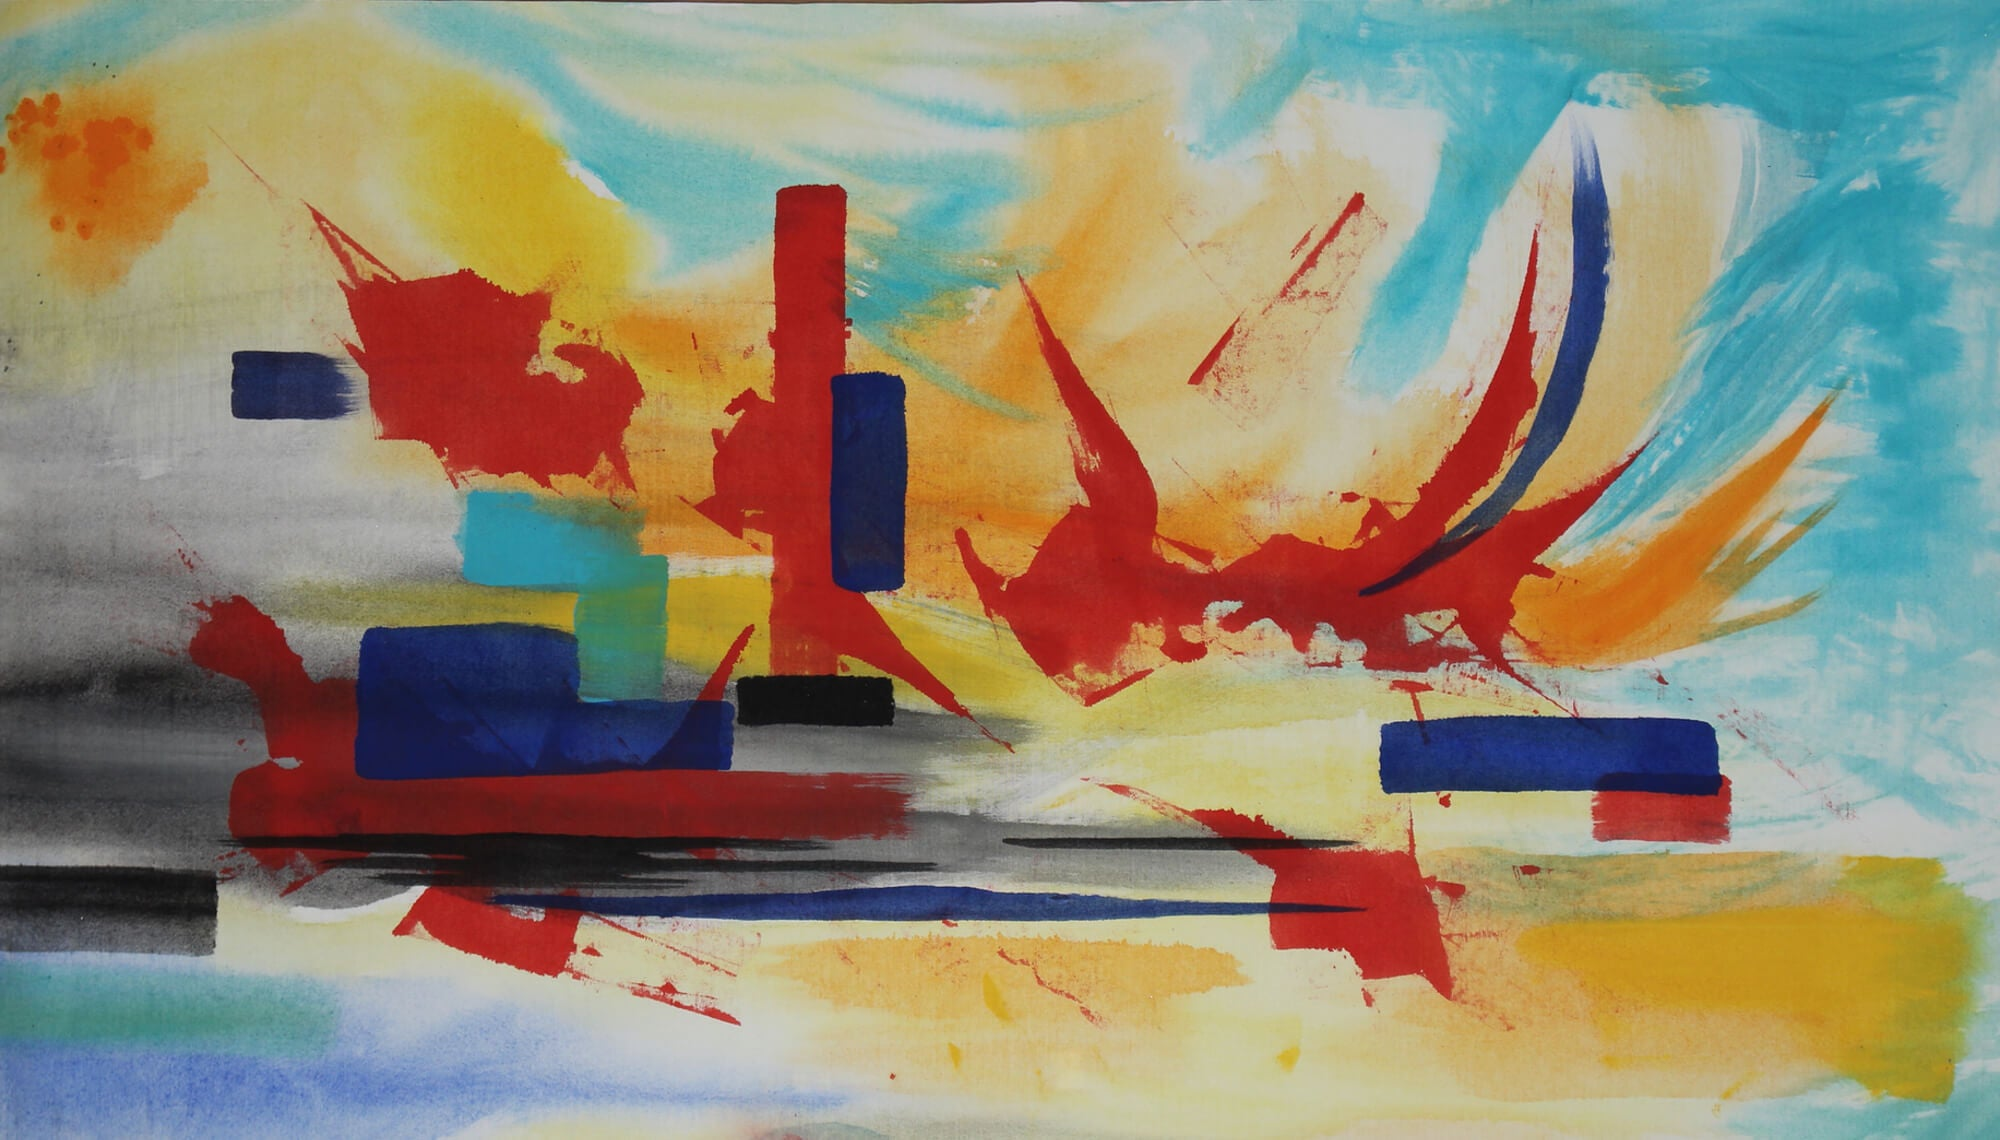 Acrylic painting of semiotic expressionism about obsolete cities by Kevo.